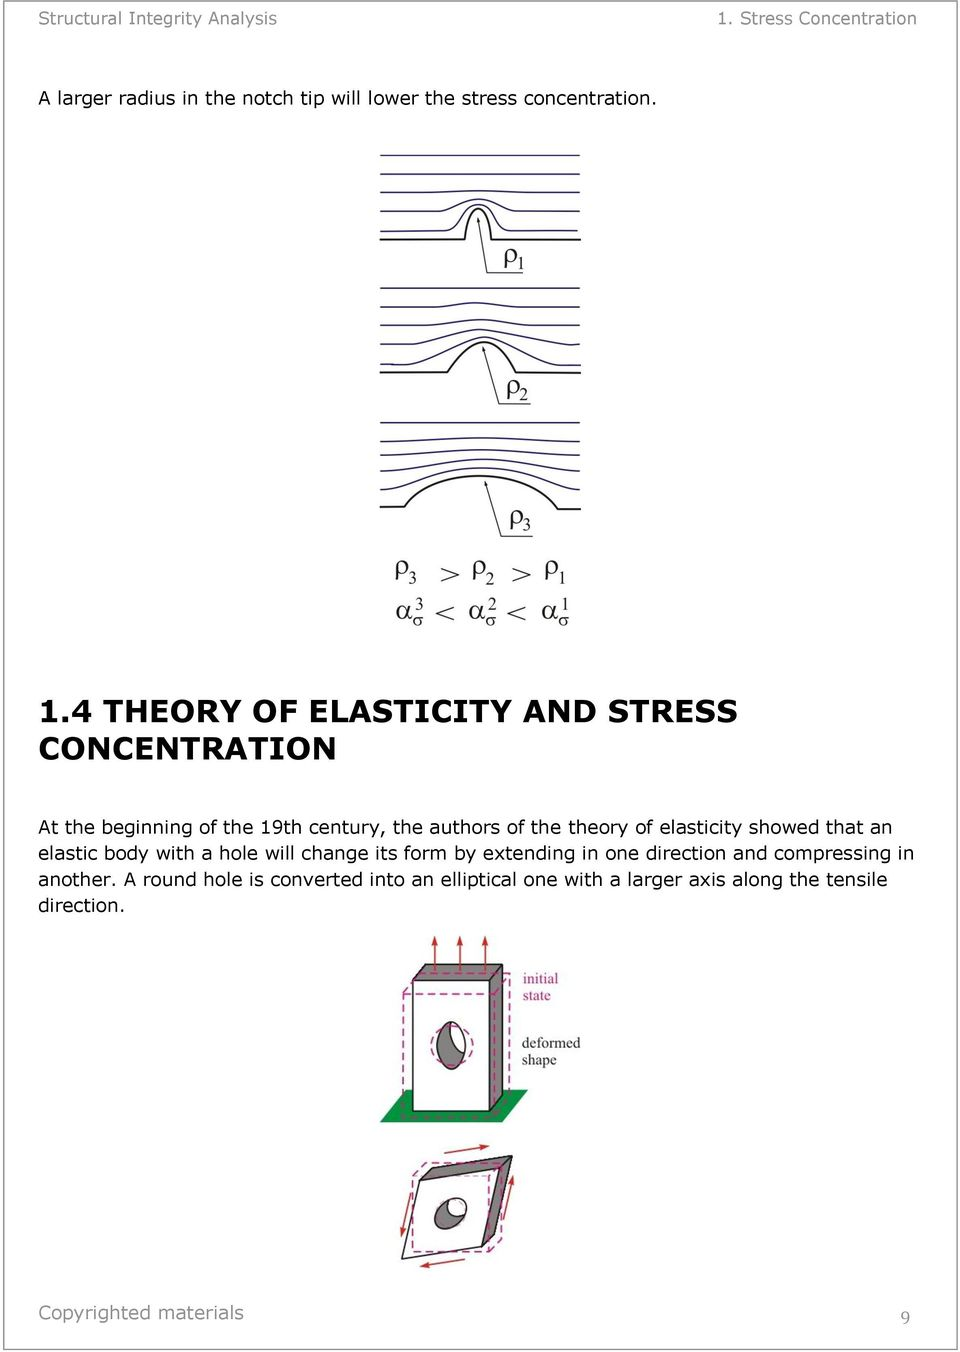 theory of elasticity showed that an elastic body with a hole will change its form by extending in one